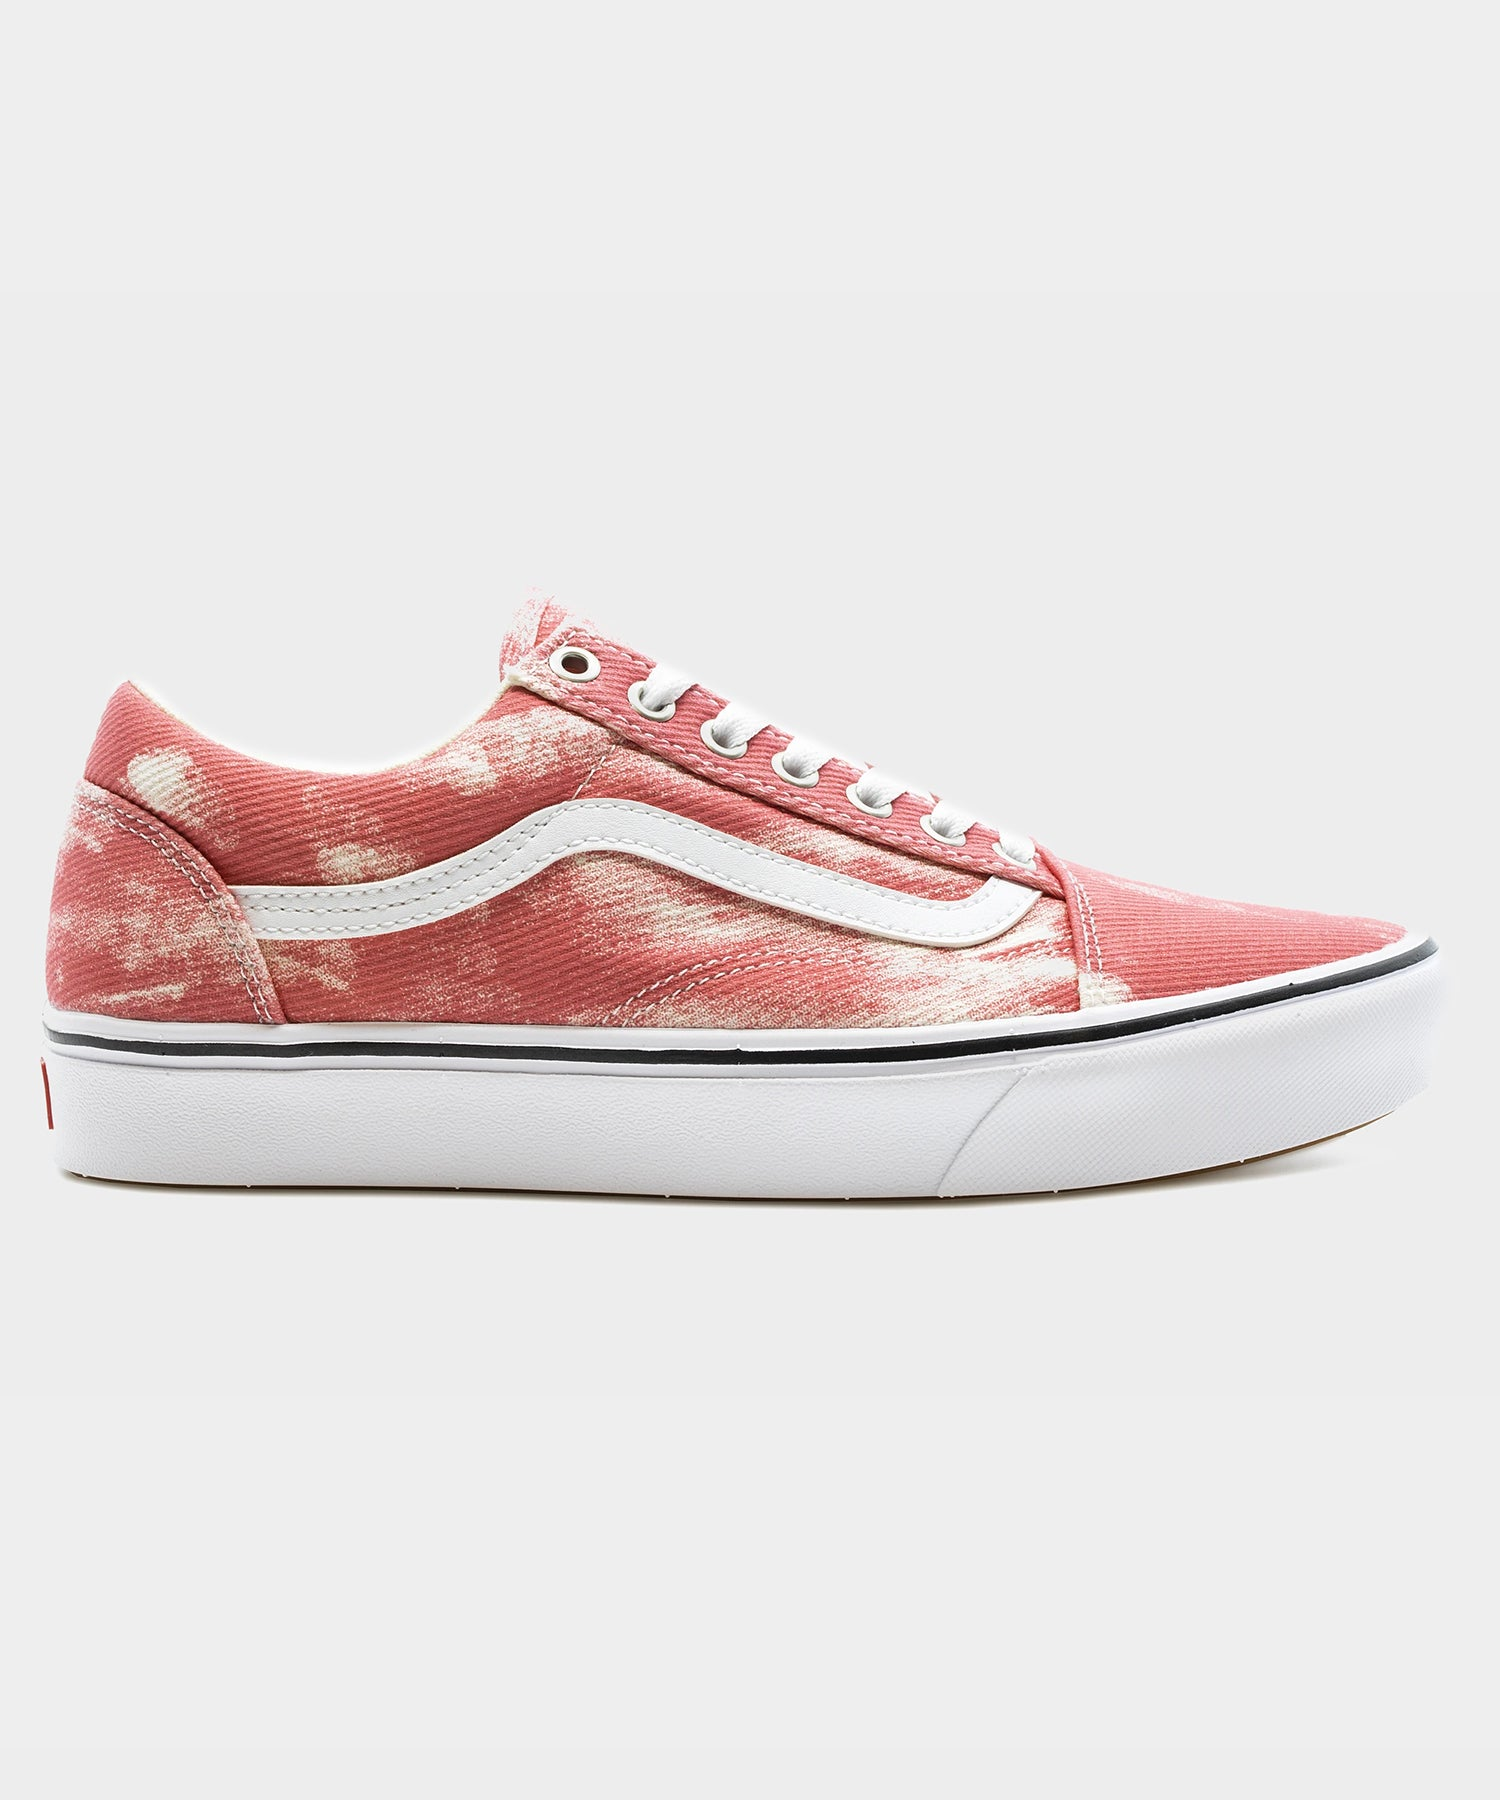 Vans Comfycush Old Skool In Bloom RED